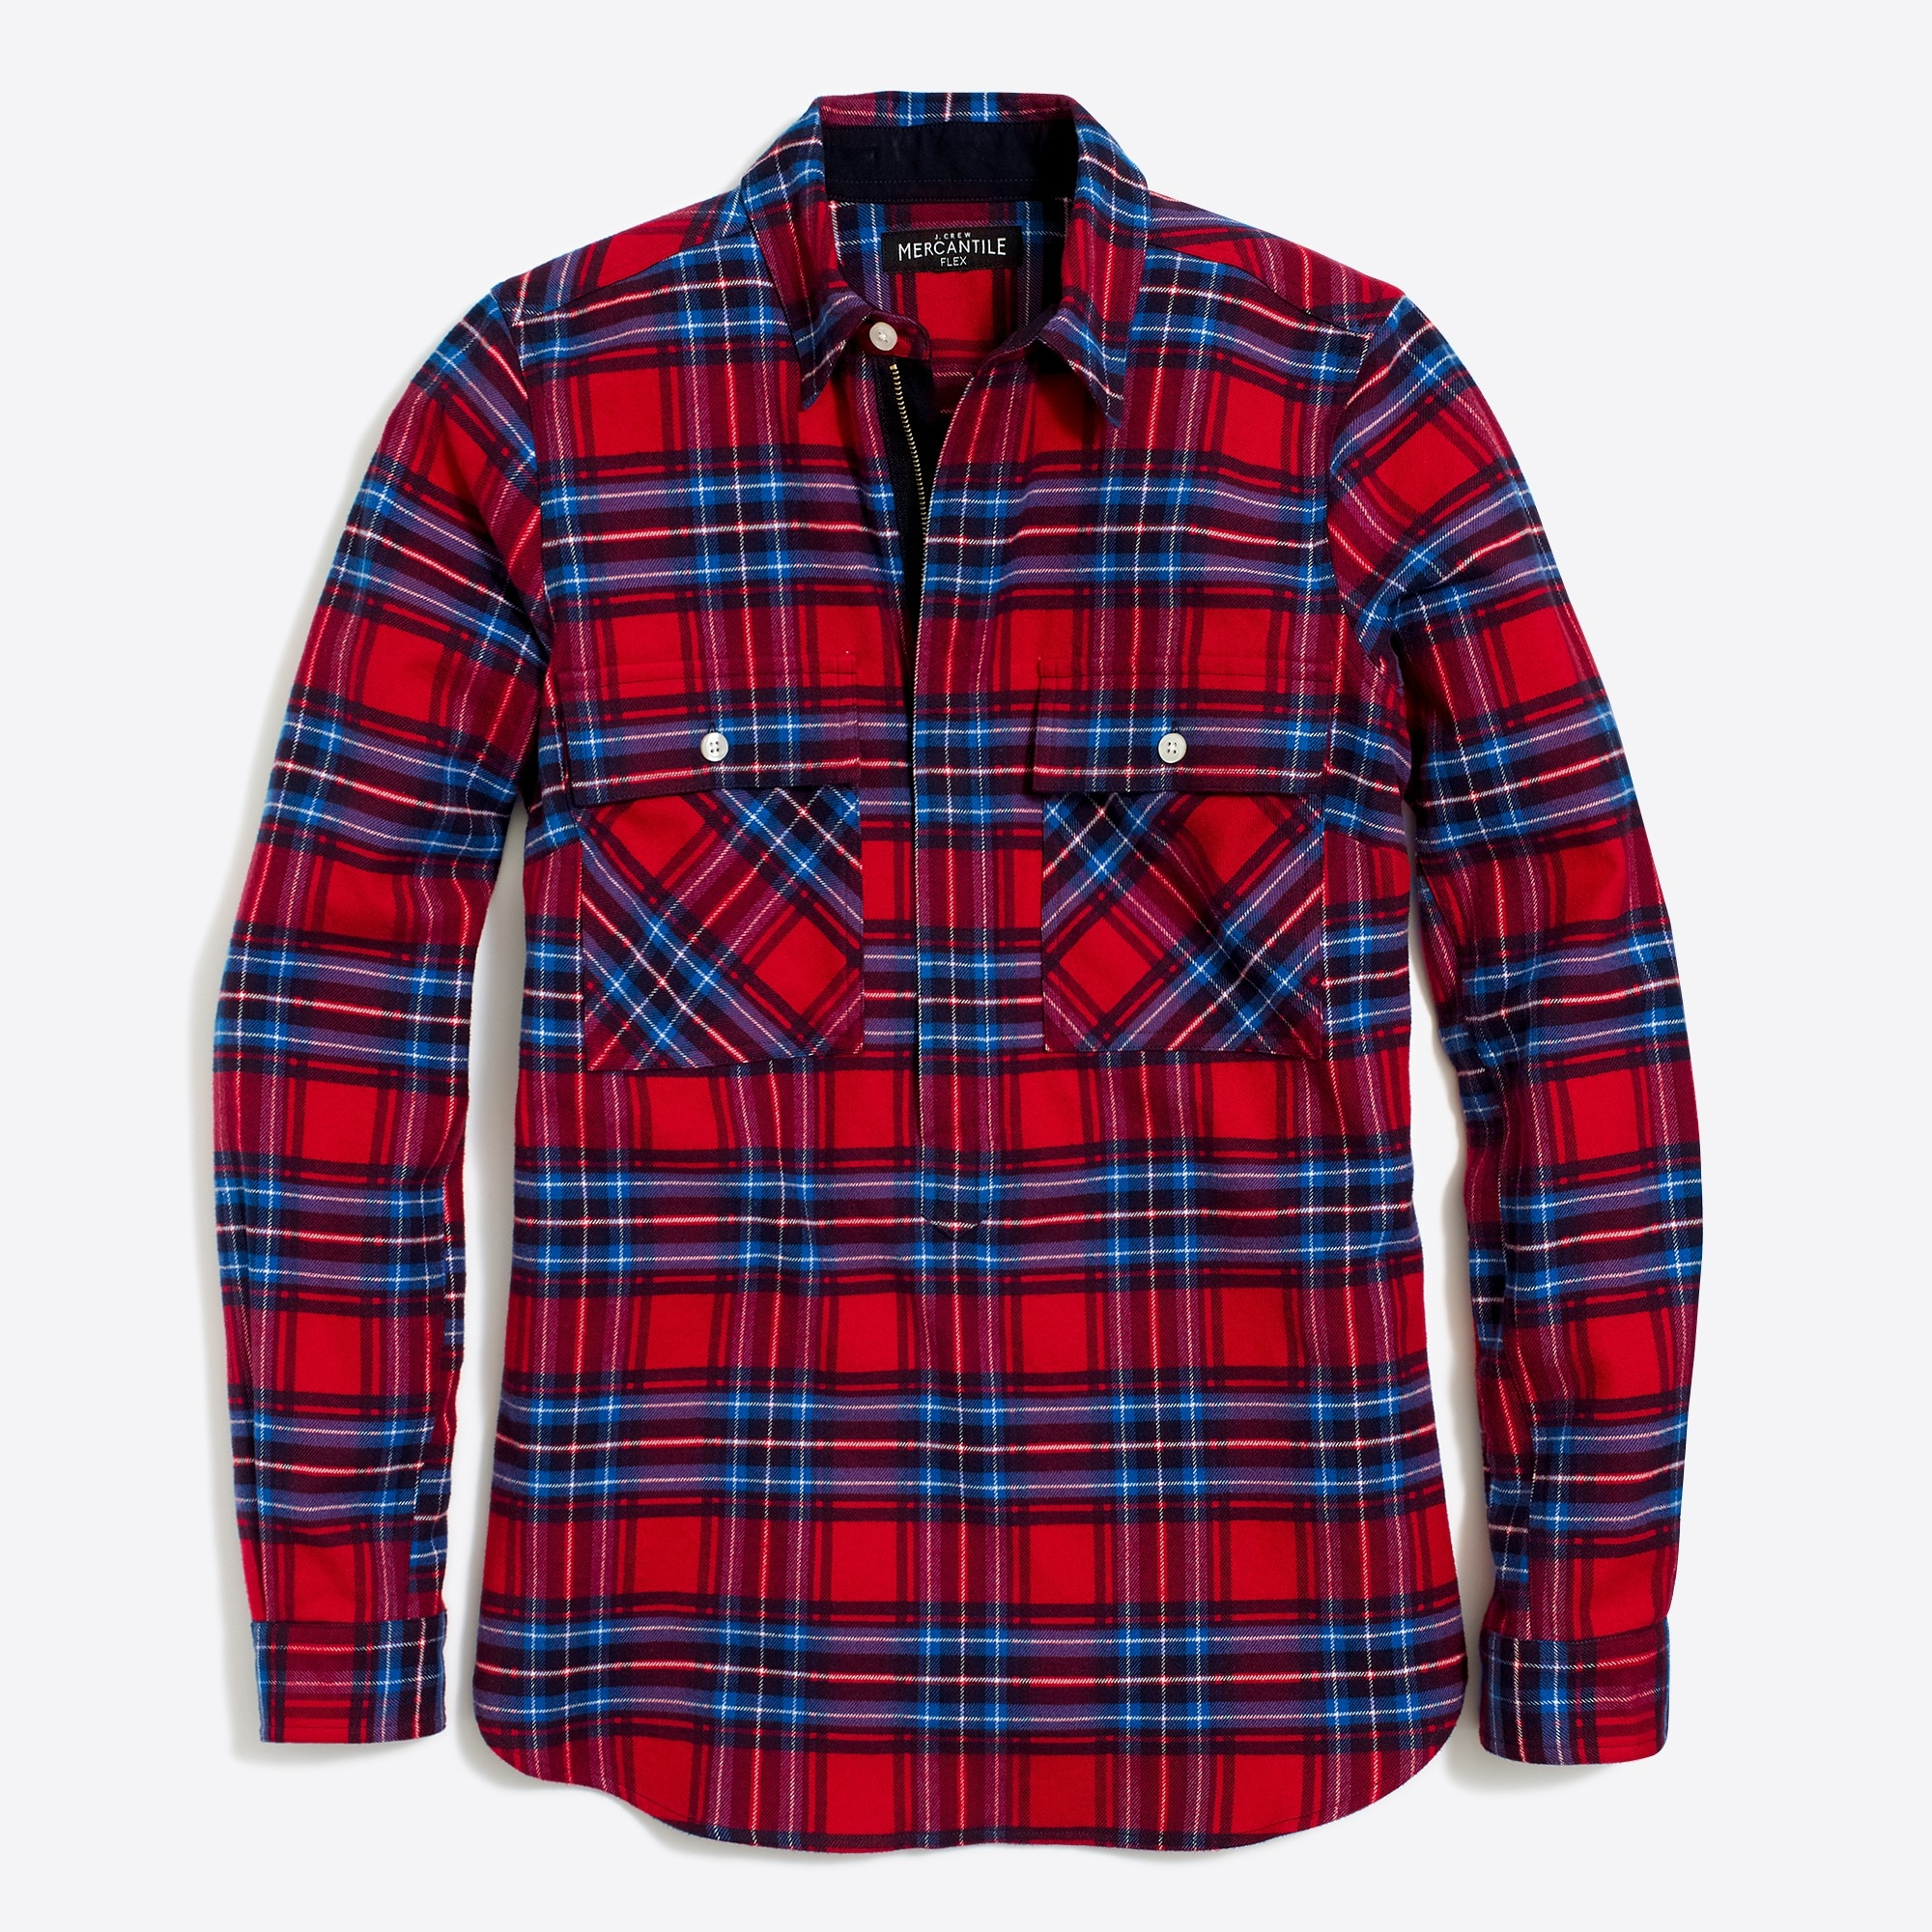 Image 2 for Plaid shirt jacket